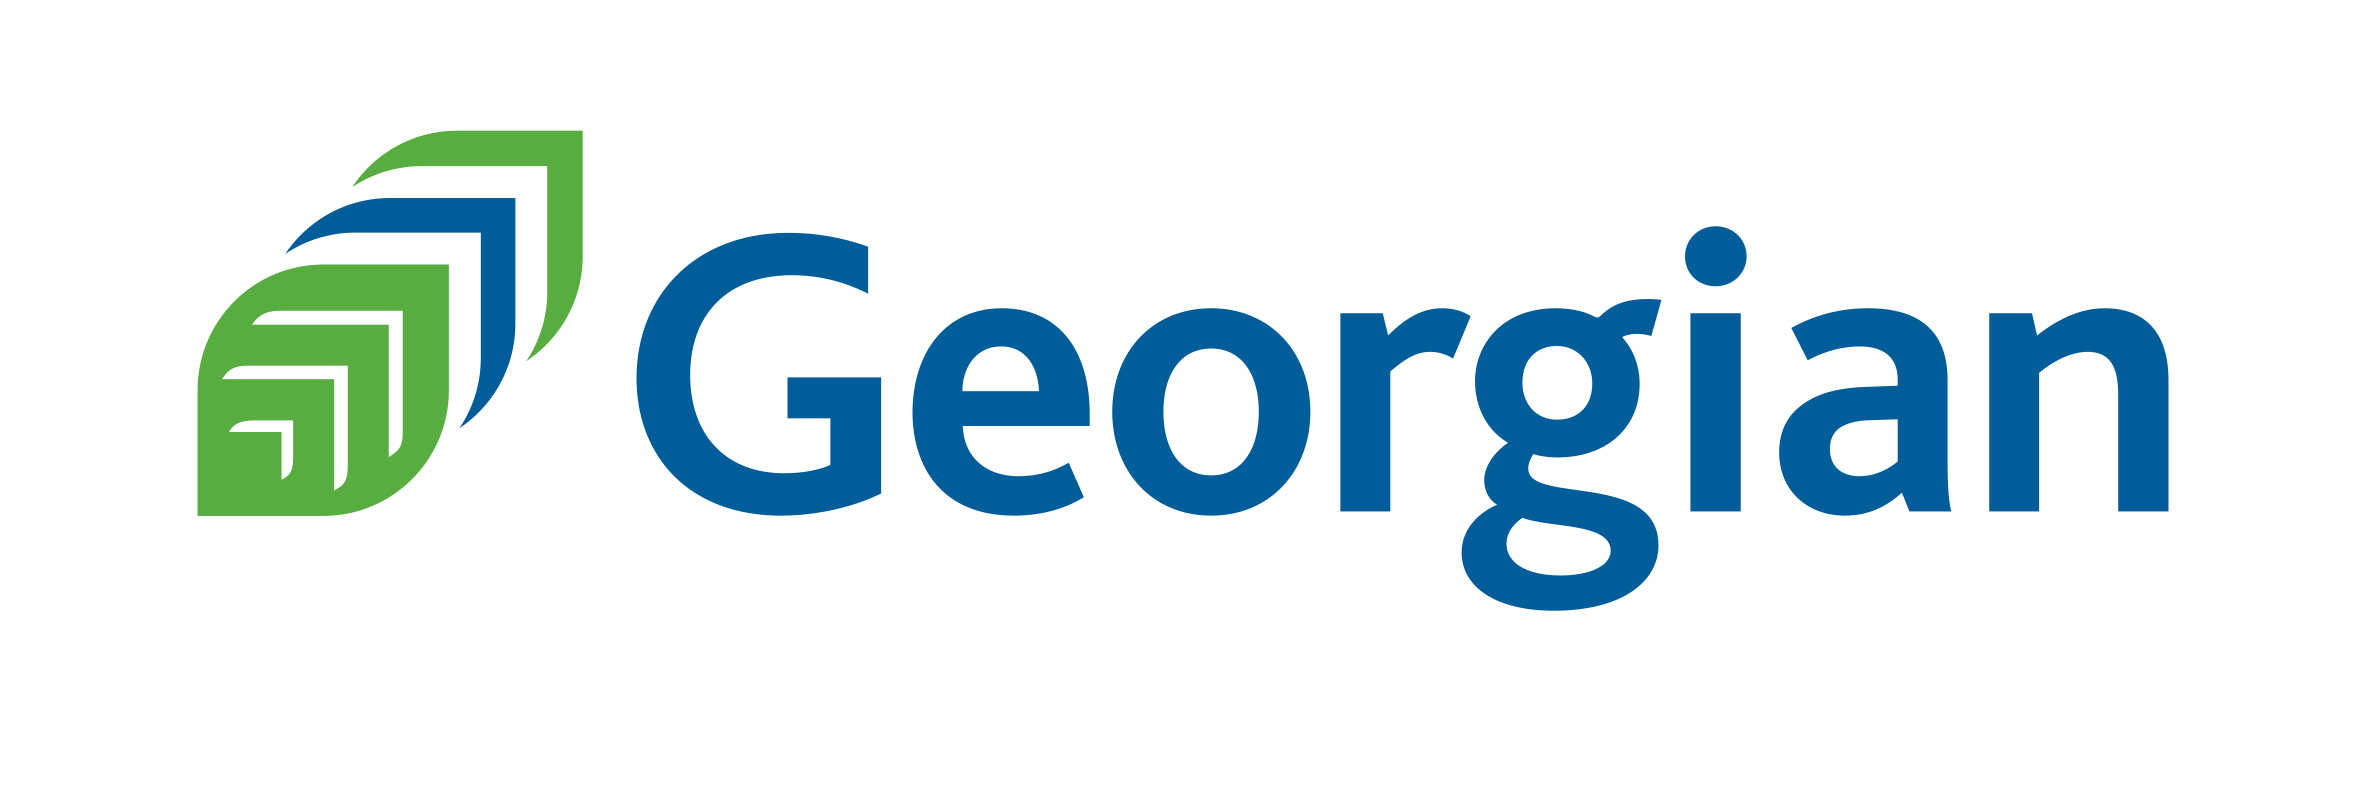 georgian_logo_colour_rgb_webonly.jpg